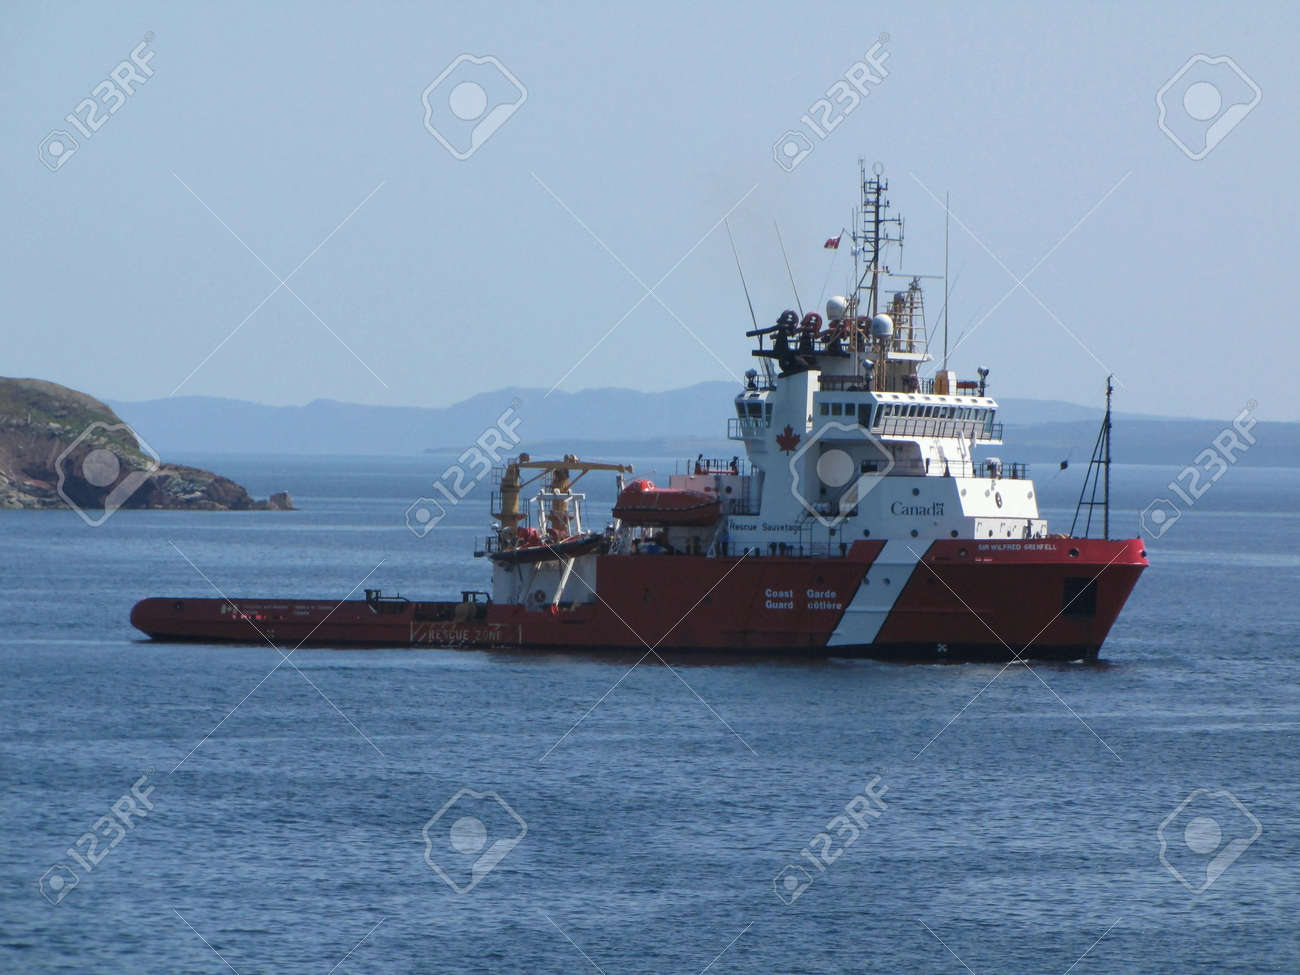 US Coast Guard boat at rescus operation  Stock Photo - 9868245